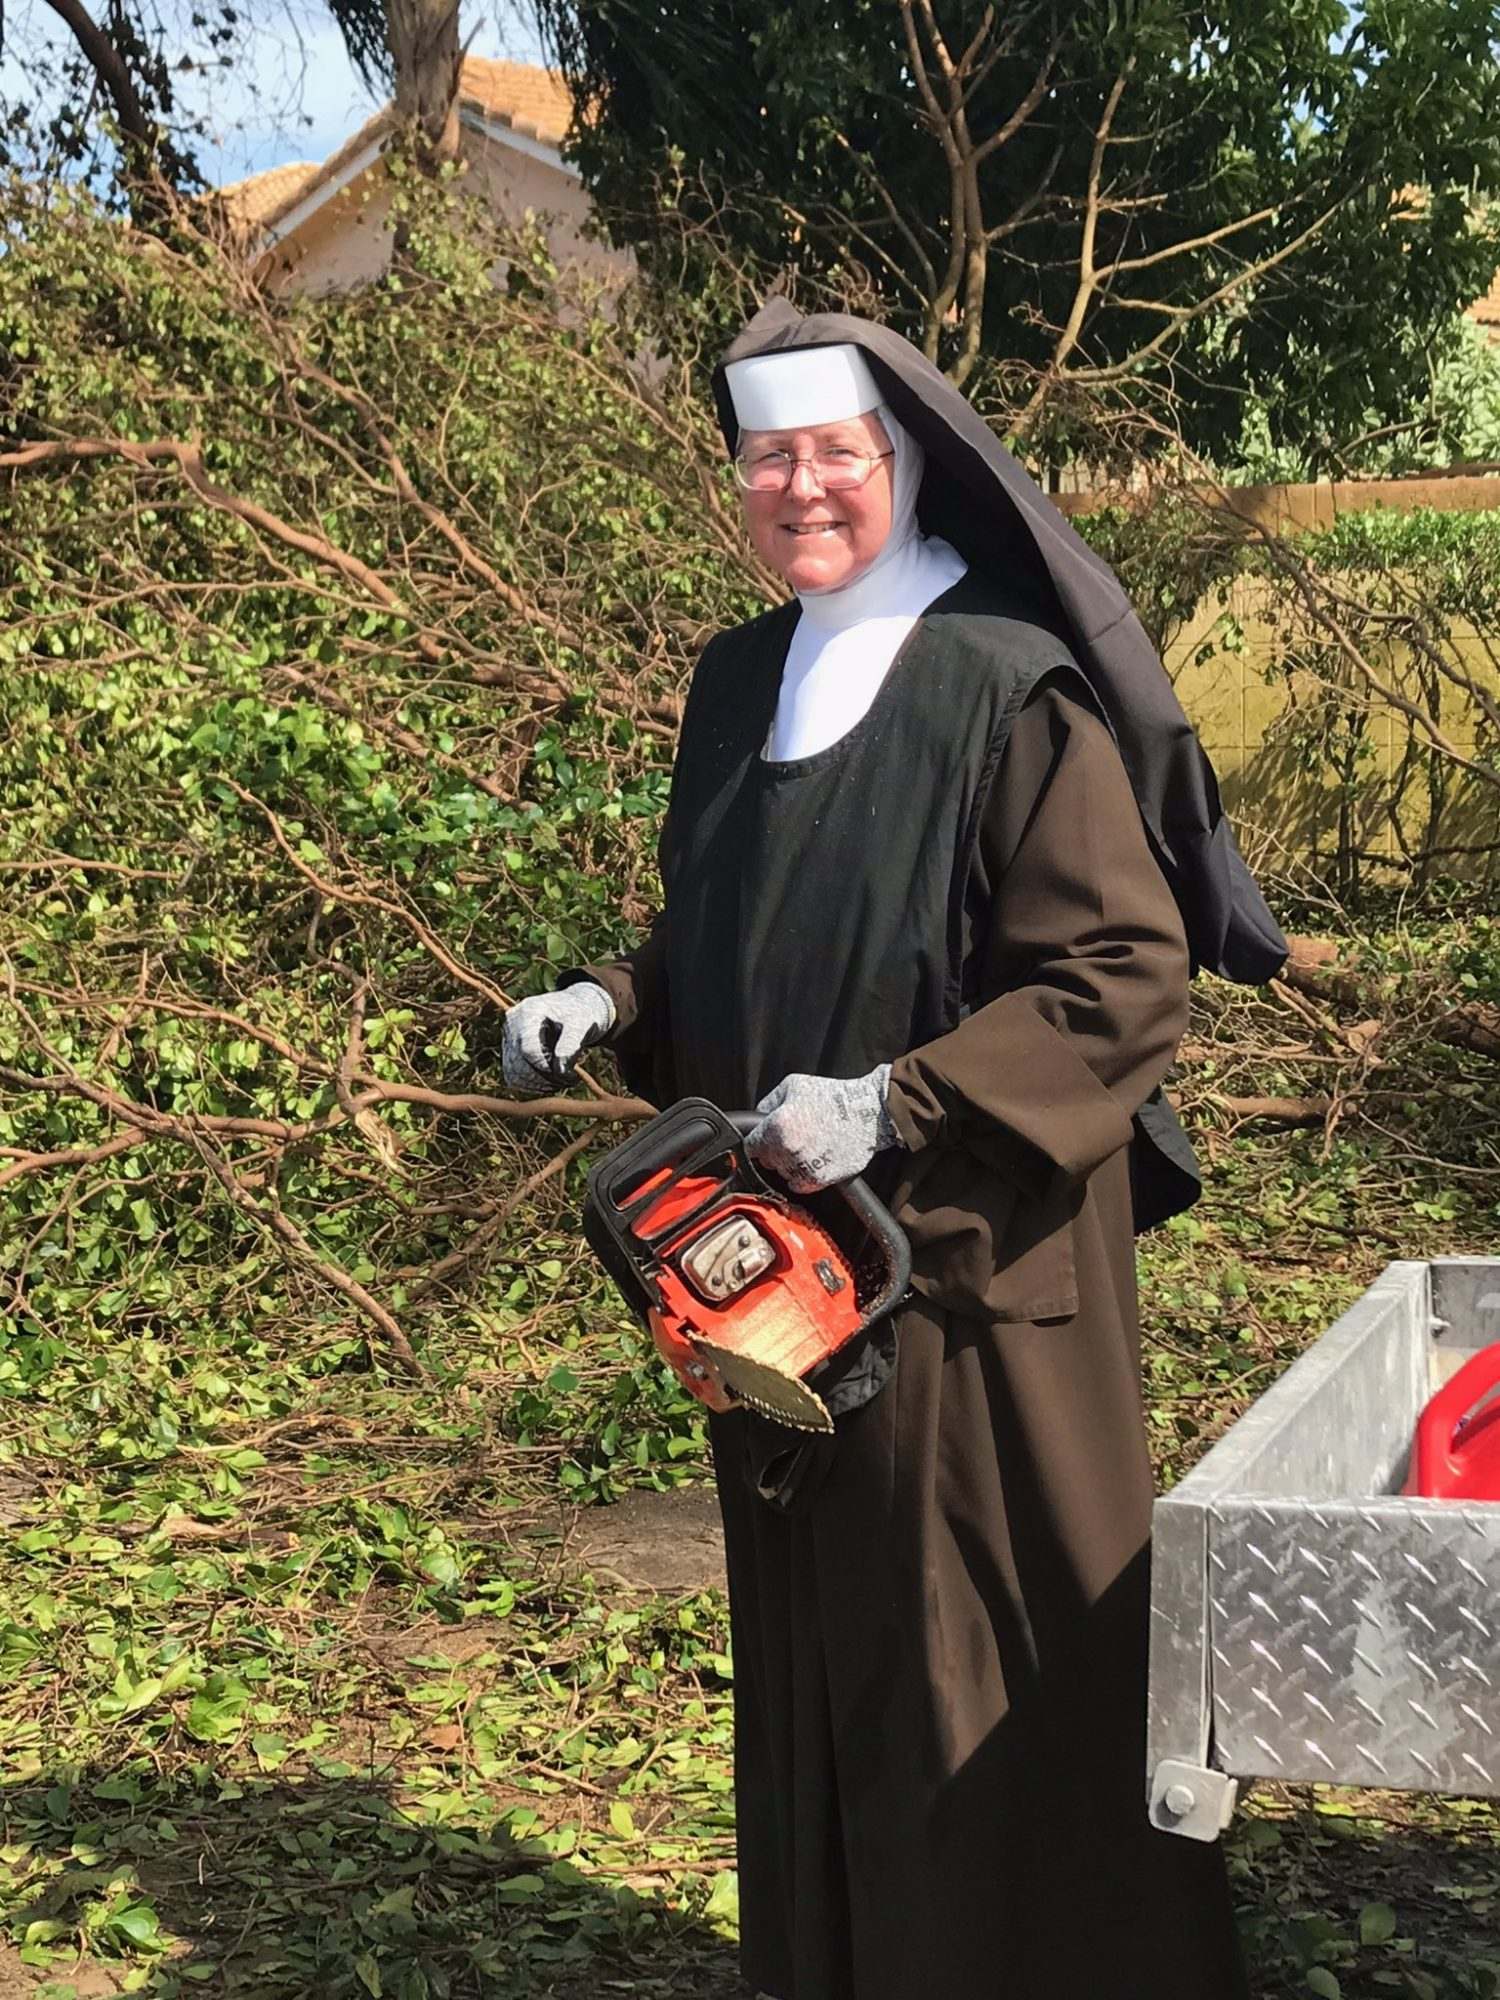 Sister Margaret Ann helps with Hurricane Irma relief efforts